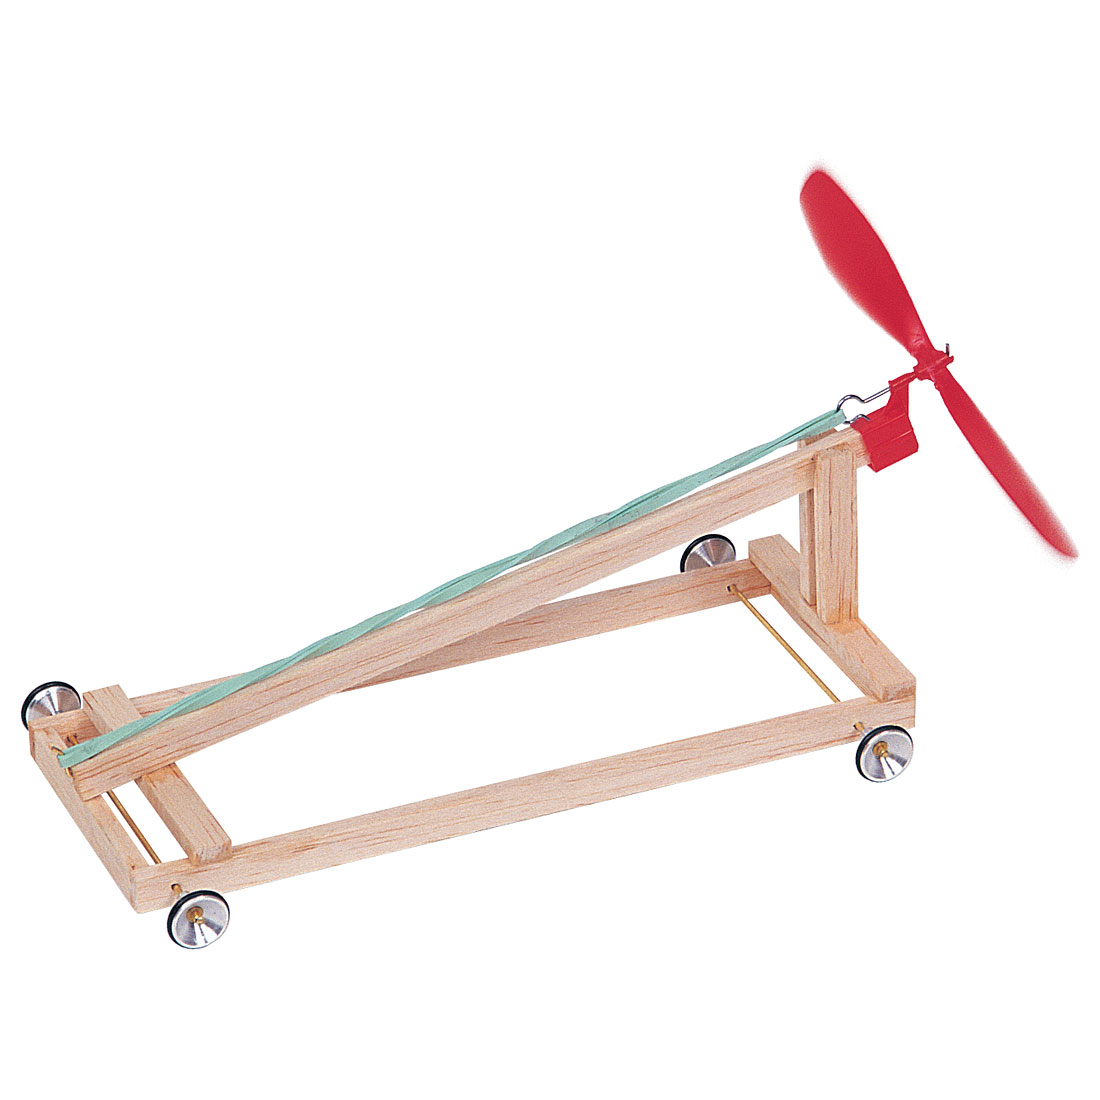 rubber band car diagram with Zephyr Rubber Band Powered Racer on Simple 20Machines as well Fc isotri 41719 moreover Tech Projects in addition Training Swords also Learn Plans For Wood Rubber Band Gun.